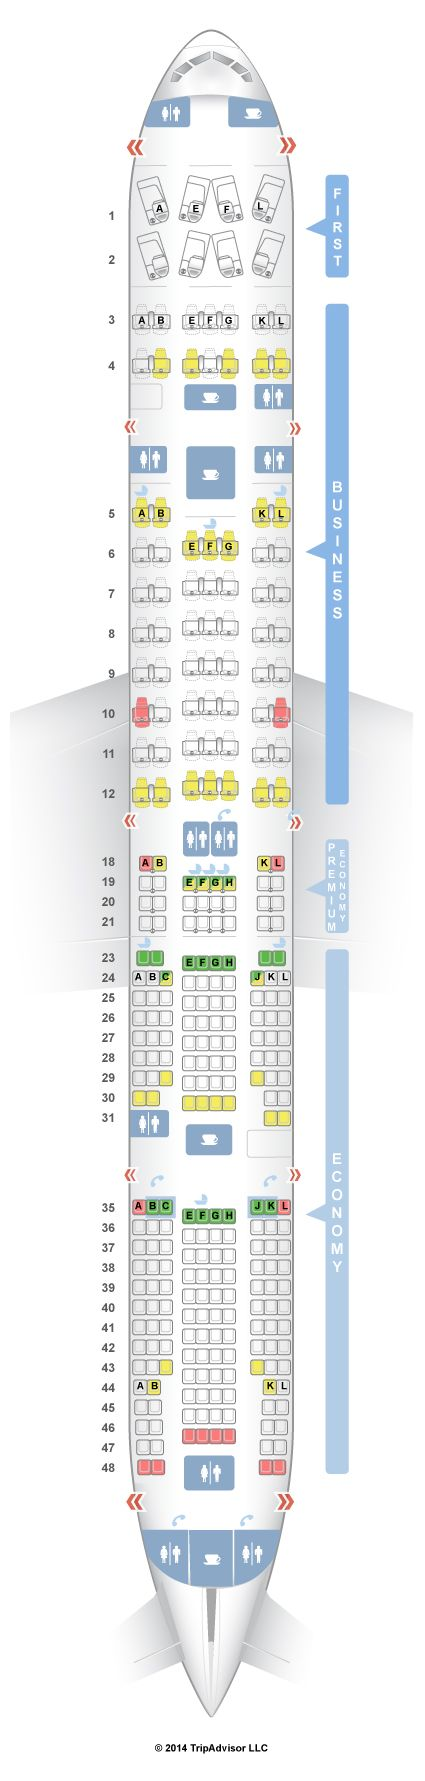 25 best ideas about boeing 777 300er seating on pinterest for Plan cabine 777 300er